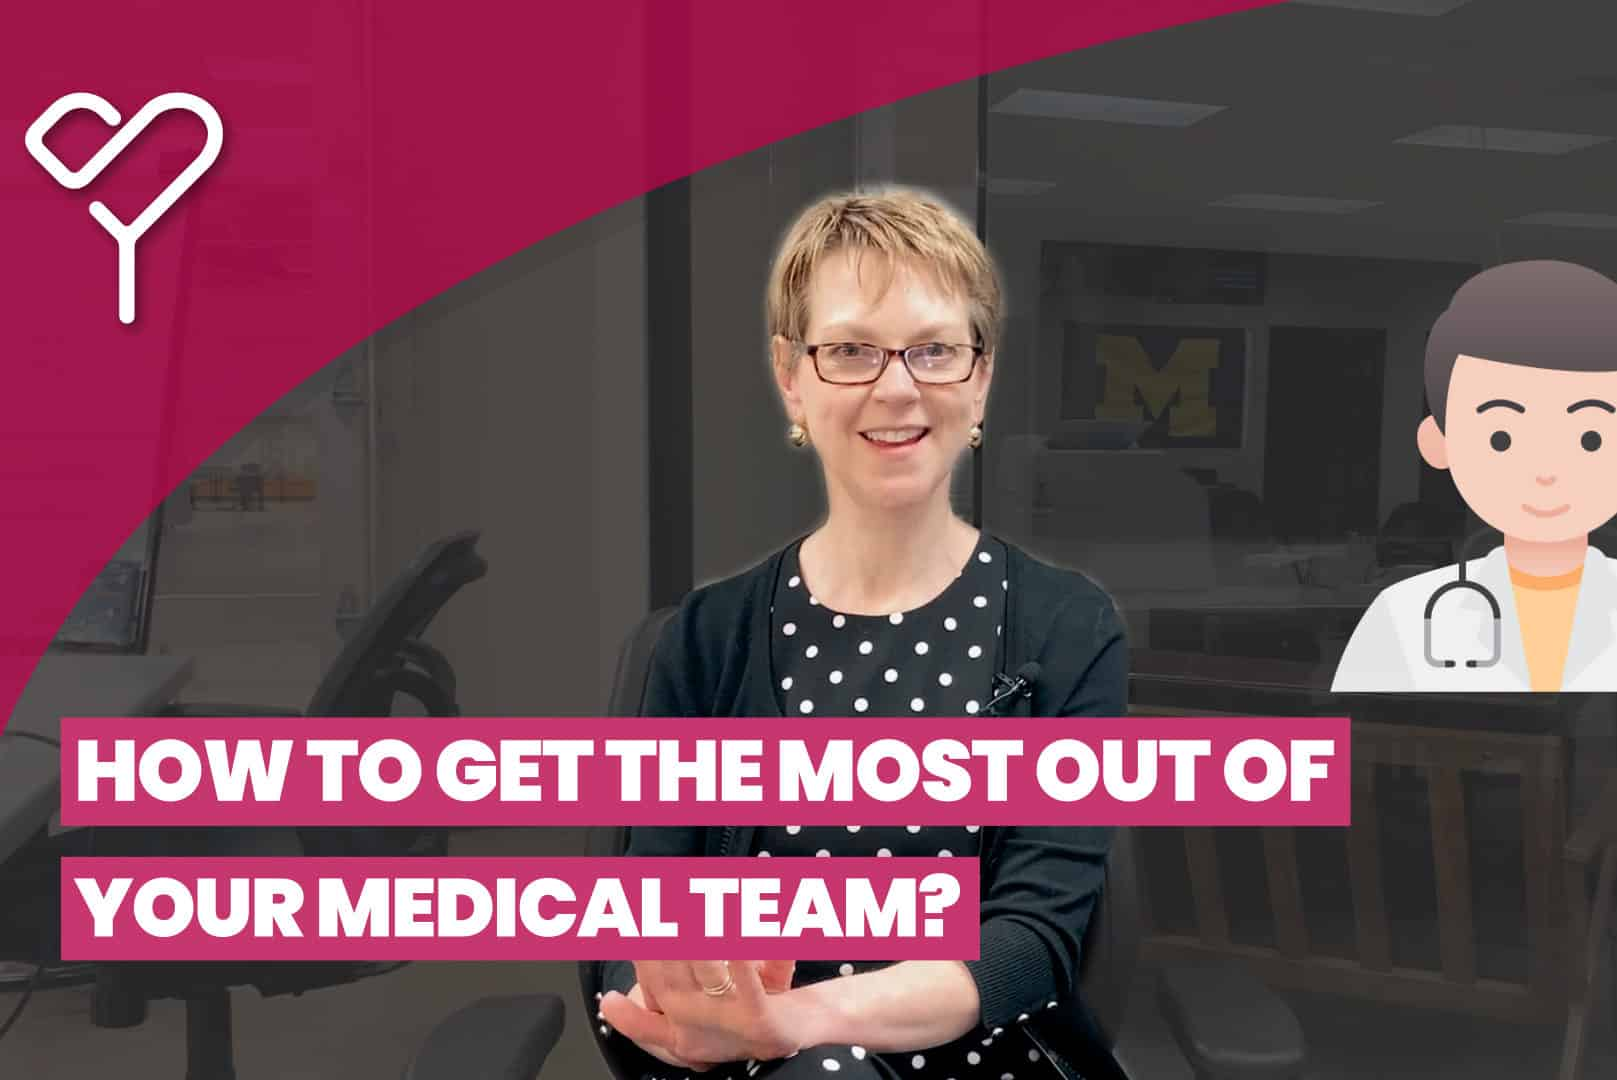 What Is the Best Way to Work With Your Medical Team?